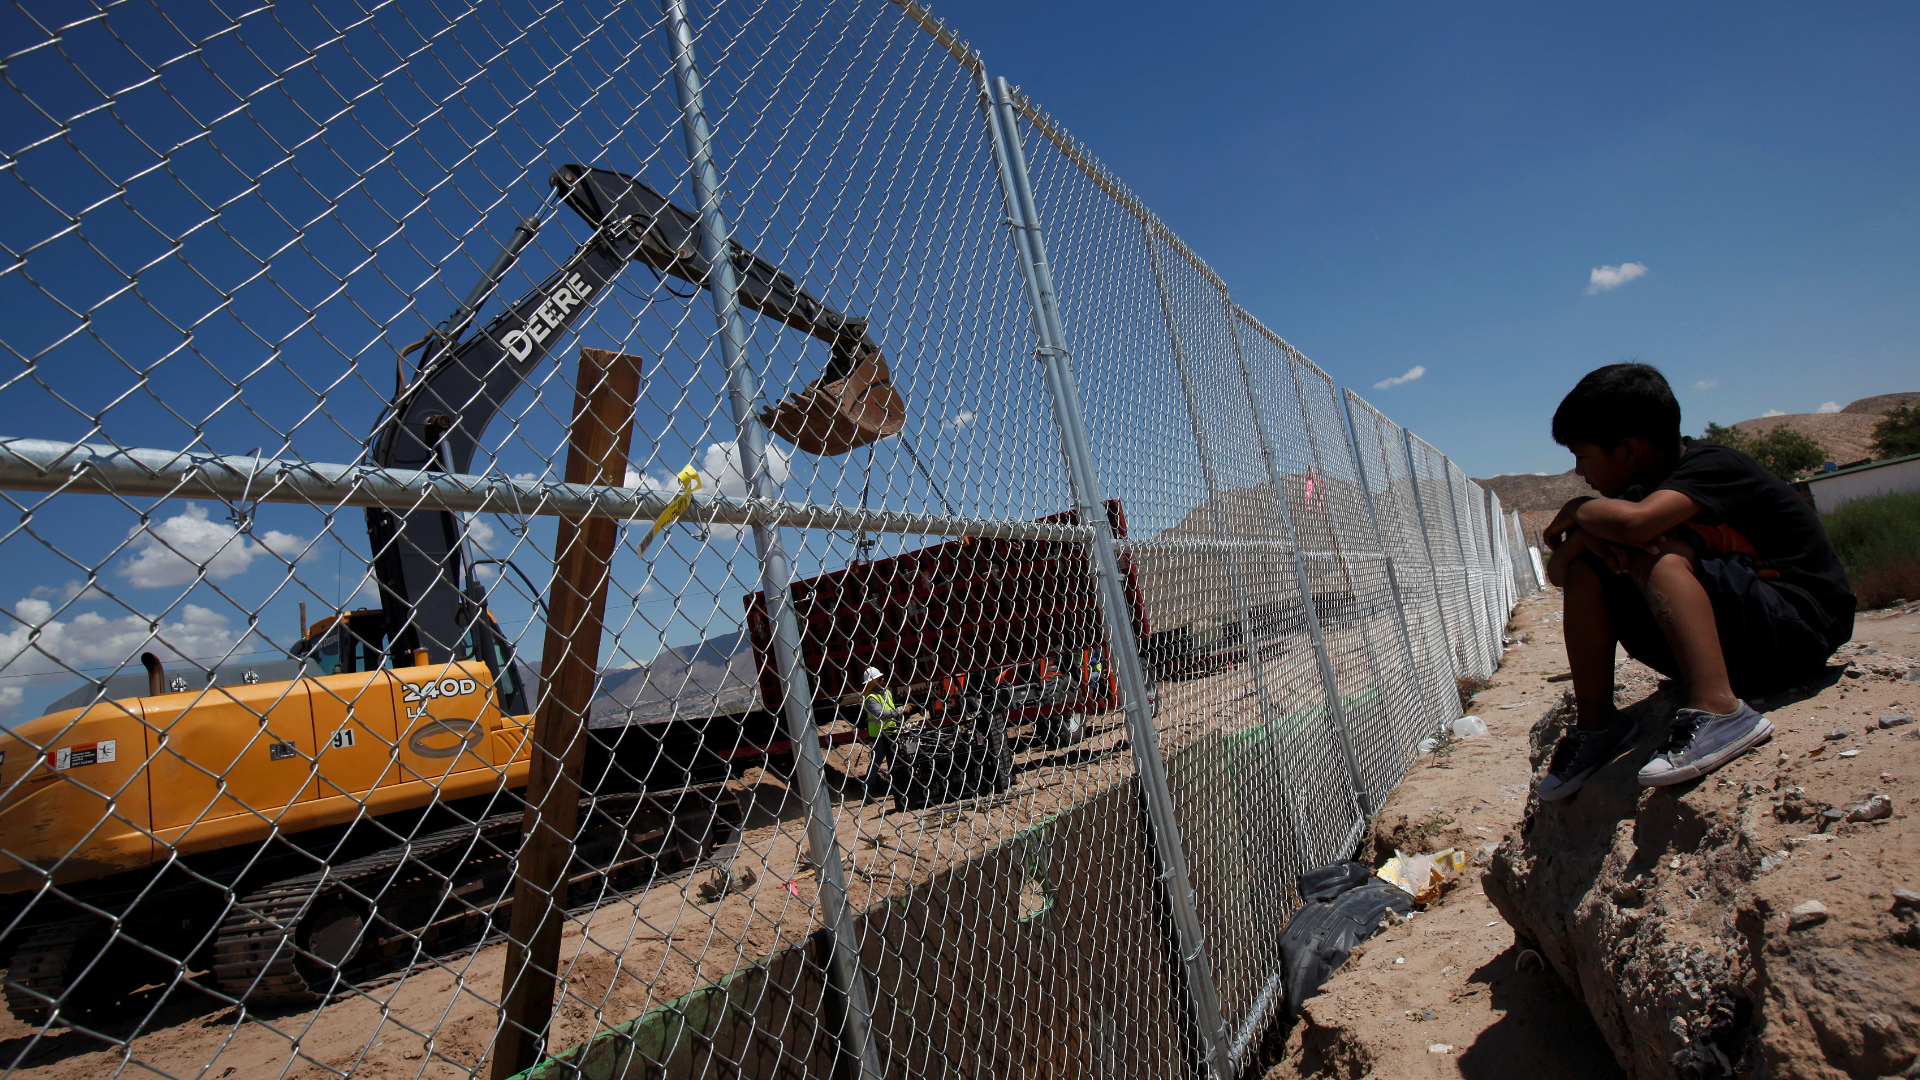 Congress looks to start building a Mexican border wall within months